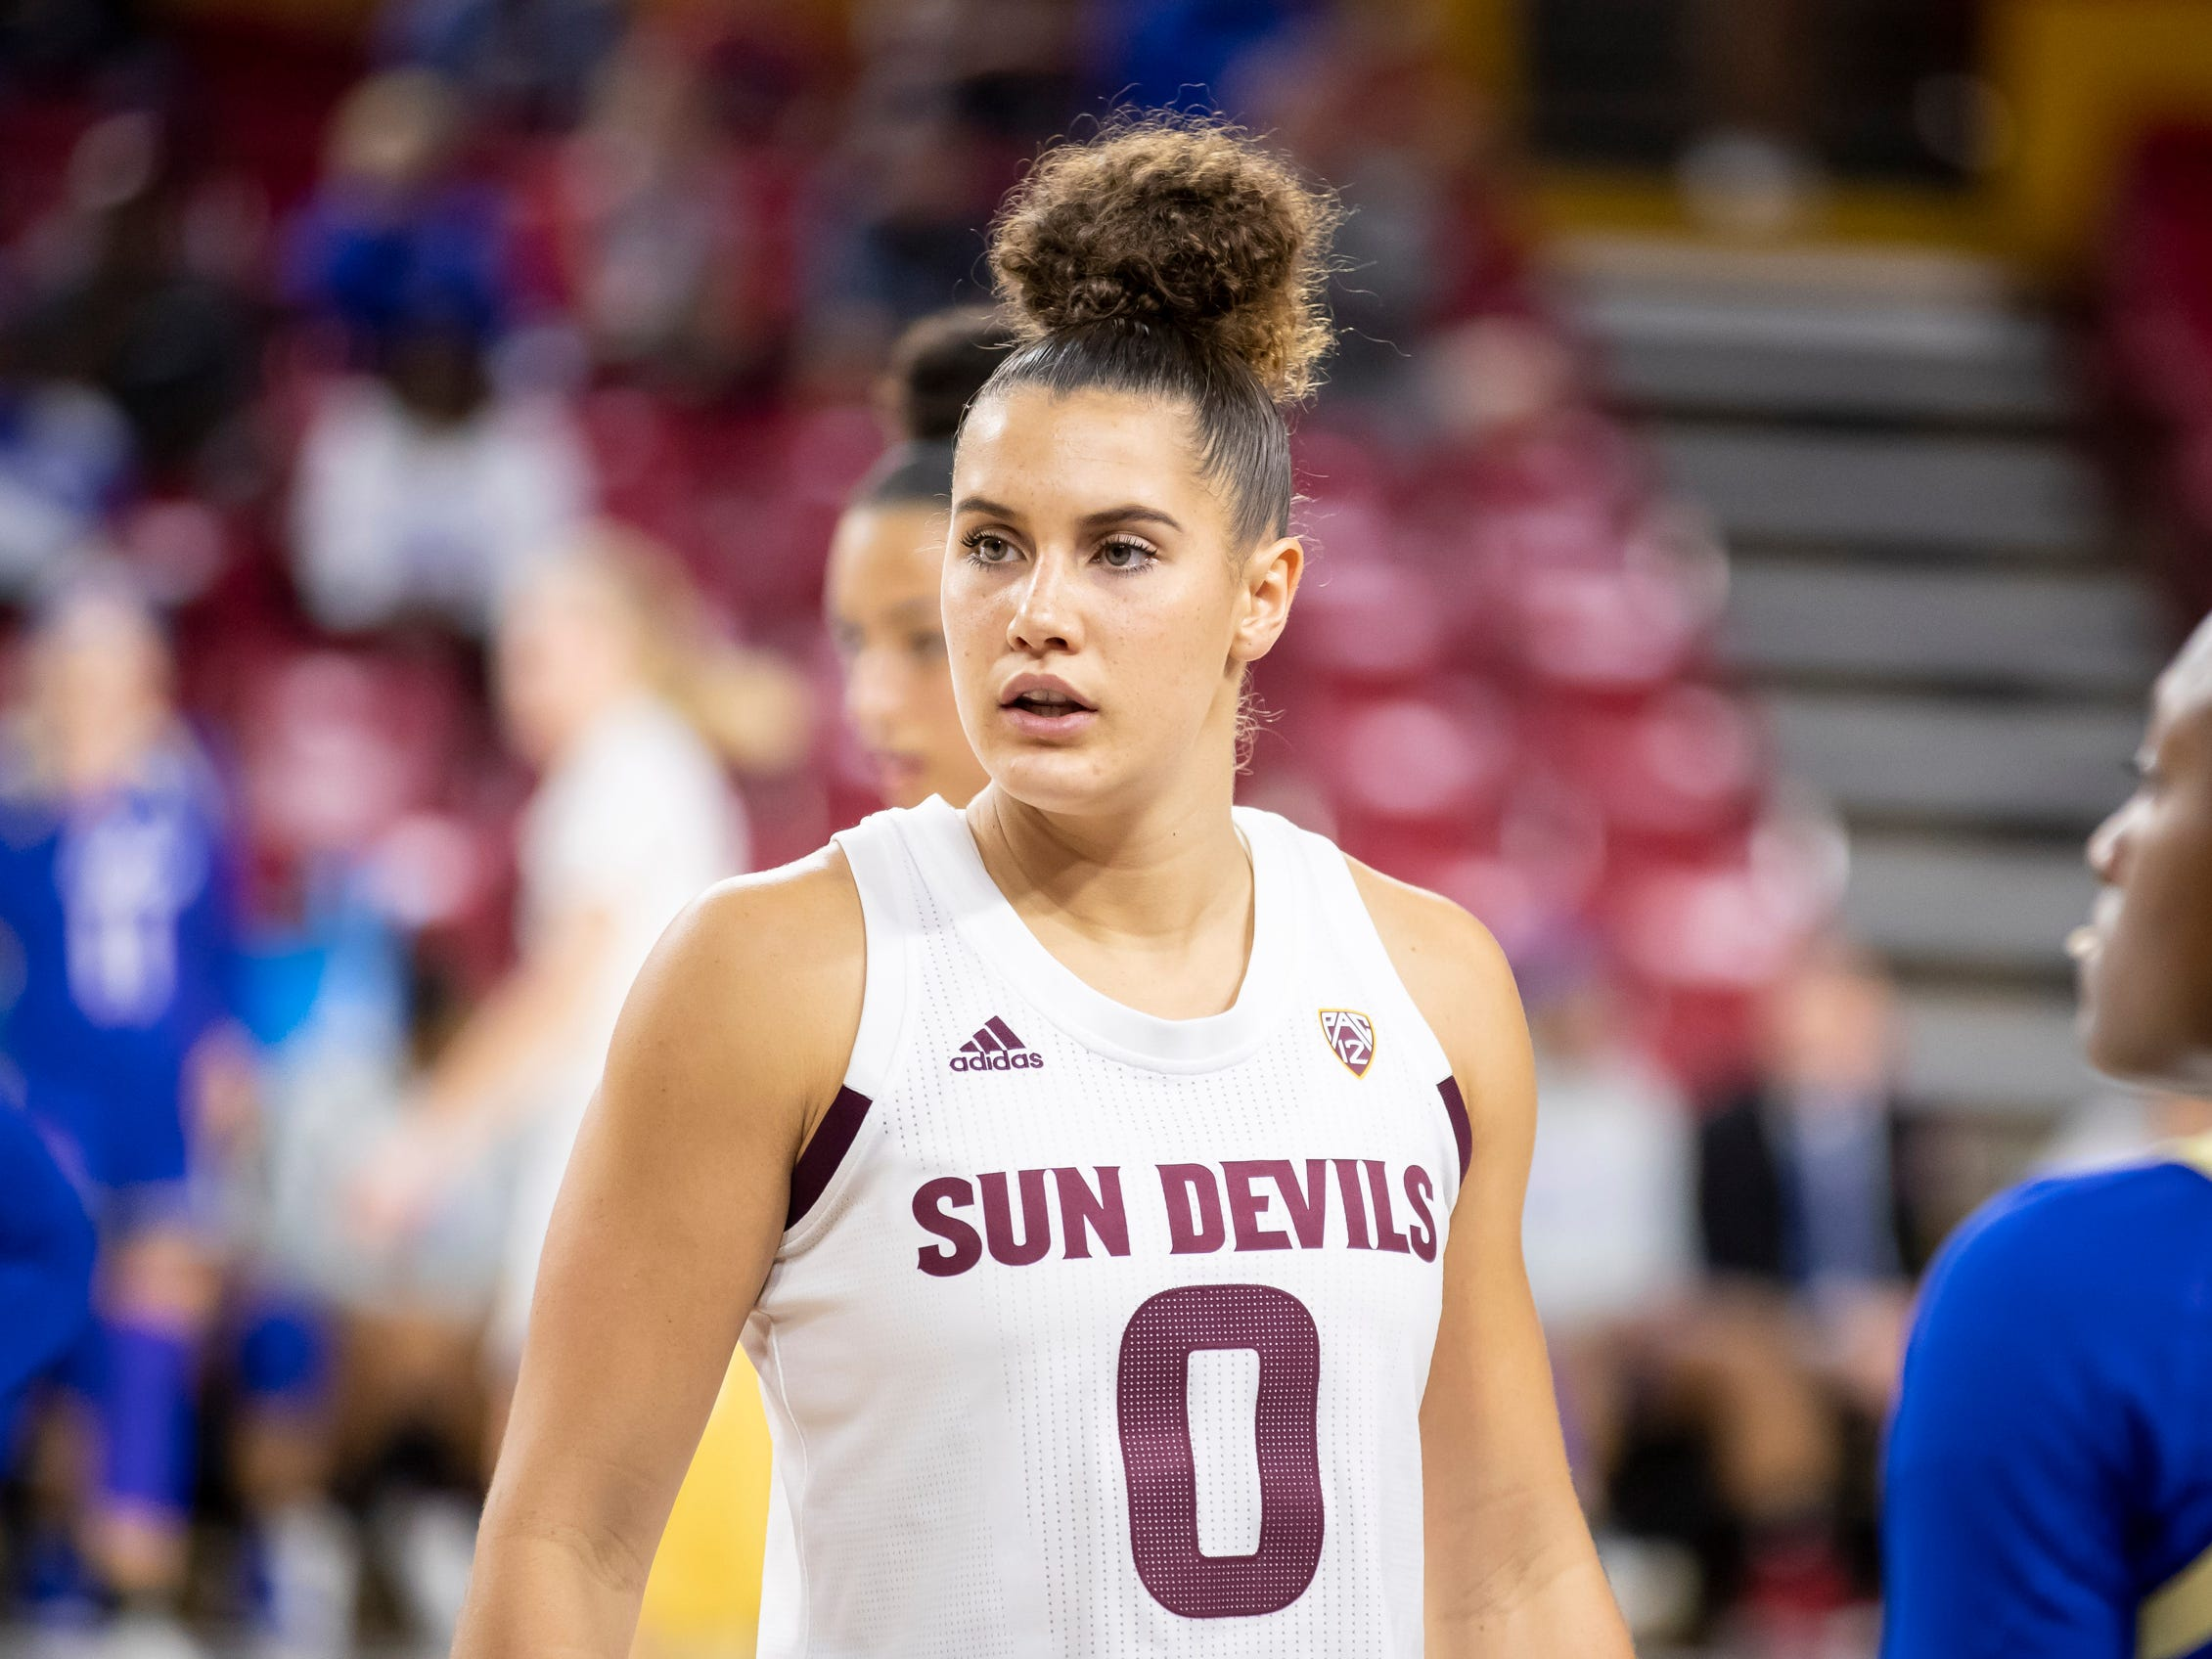 Guard Taya Hanson (0) of the Arizona State Sun Devils looks on during the game against Tulsa Golden Hurricane at Wells Fargo Arena on Sunday, December 2, 2018 in Tempe, Arizona.